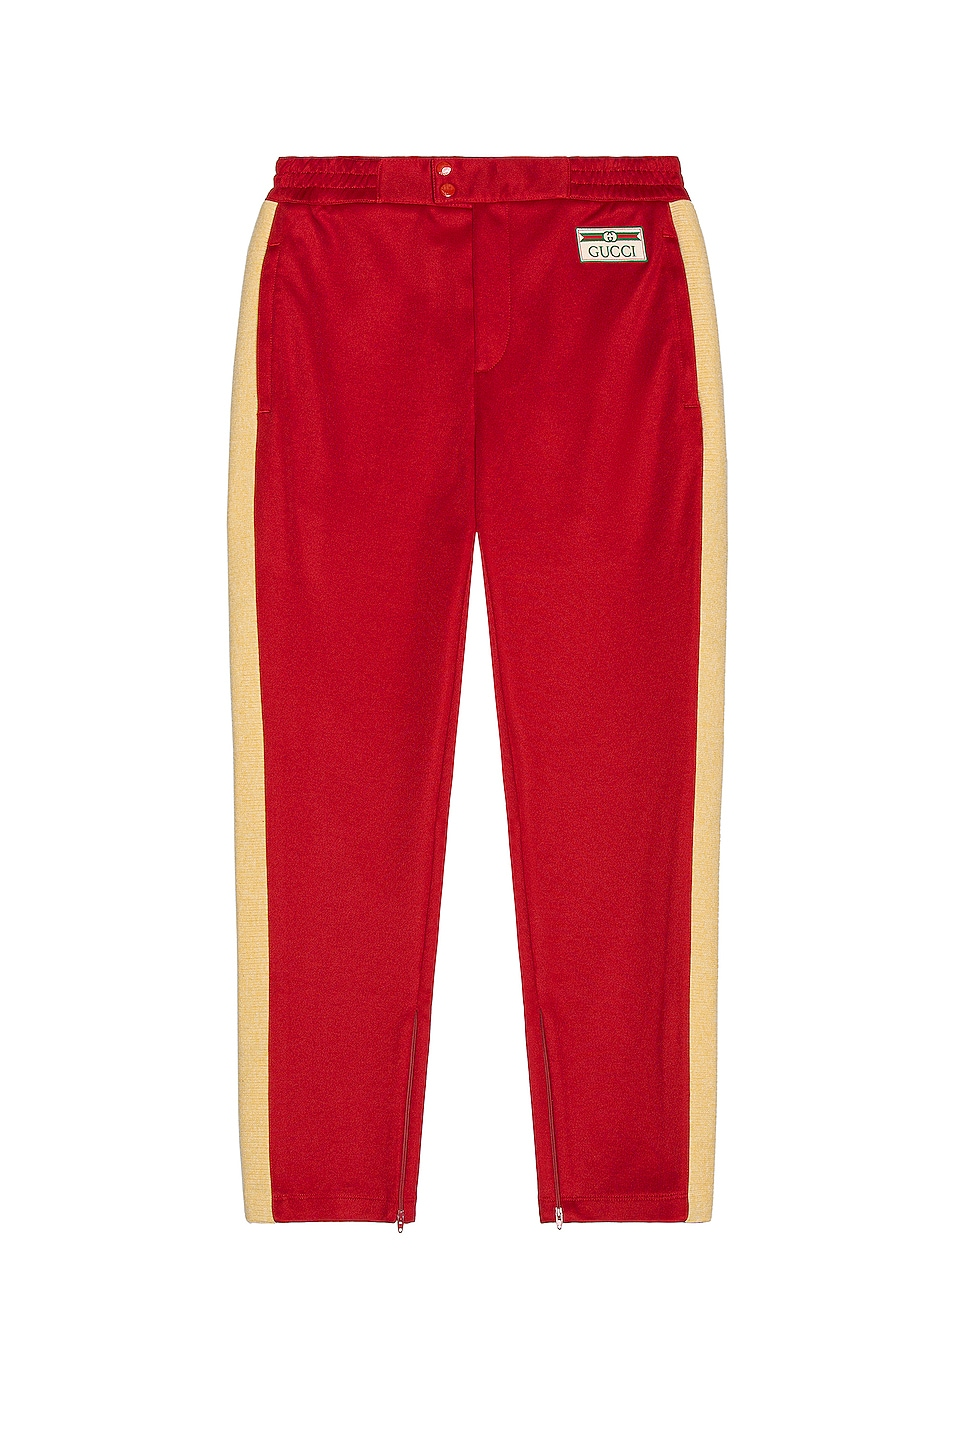 Image 1 of Gucci Sweatpants in Live Red & Multicolor